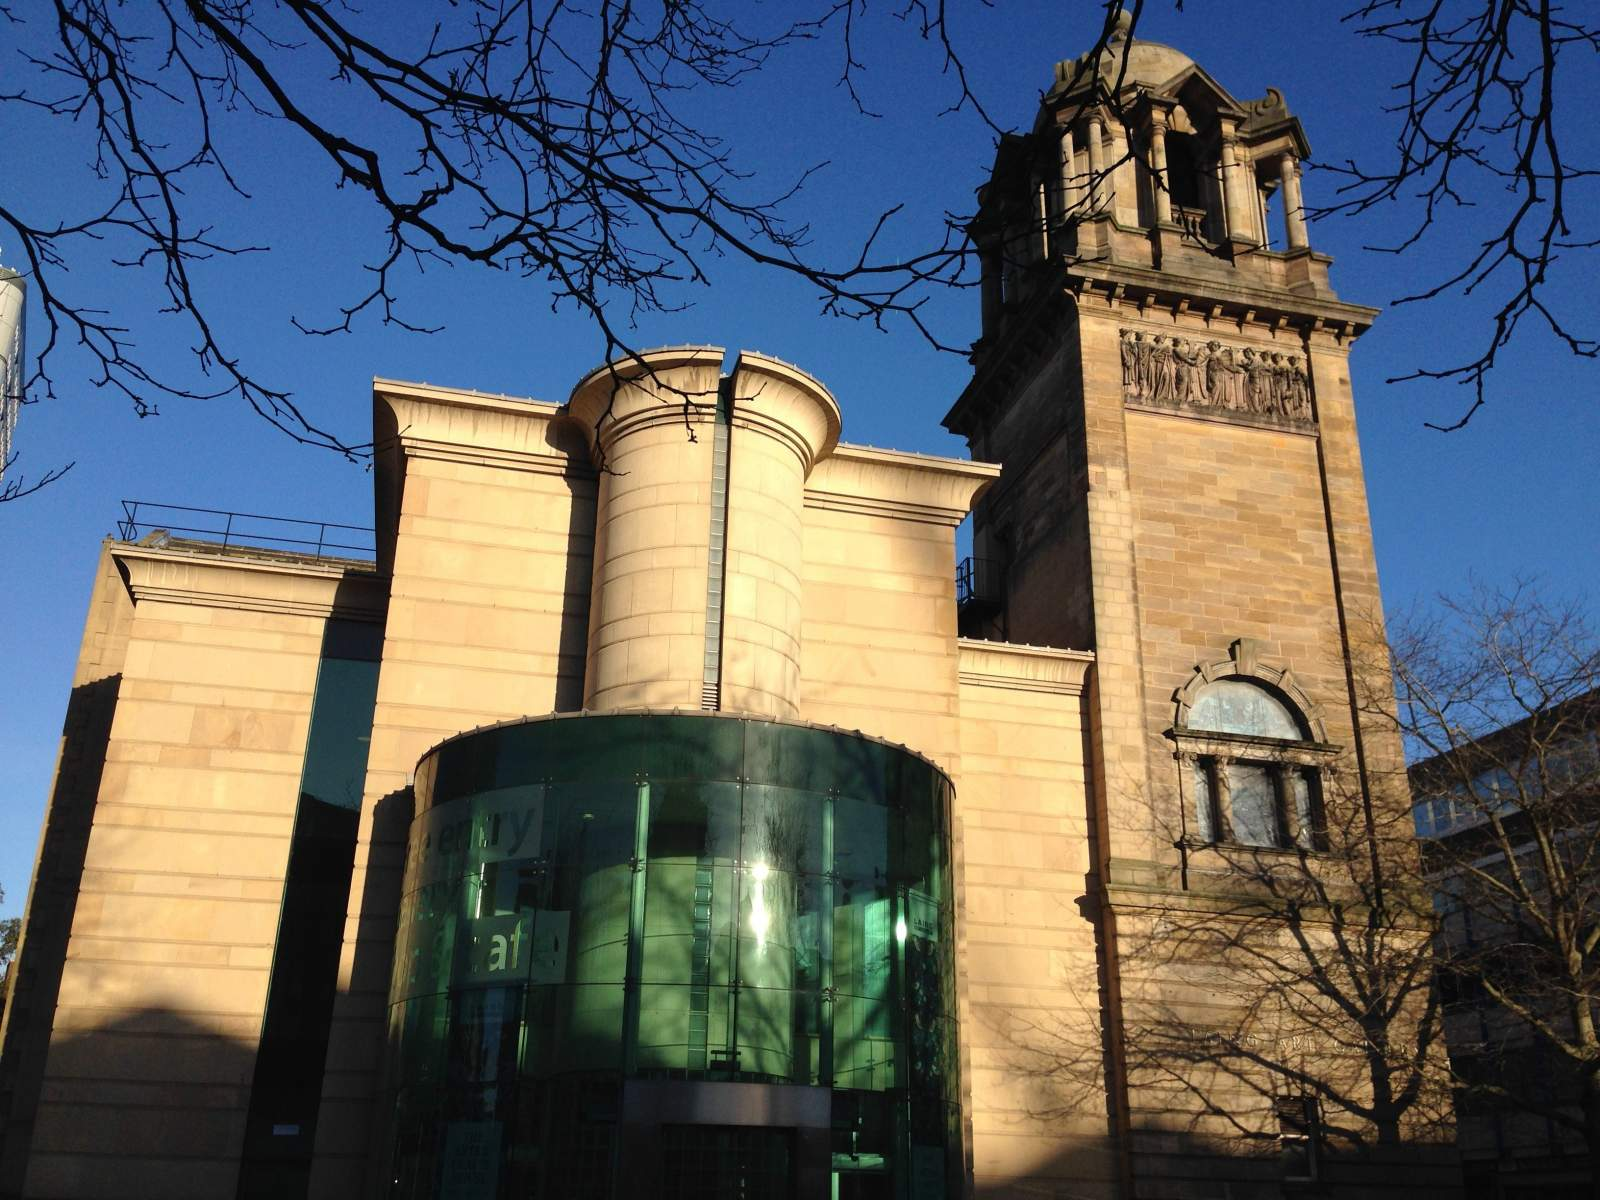 Laing Art Gallery Newcastle